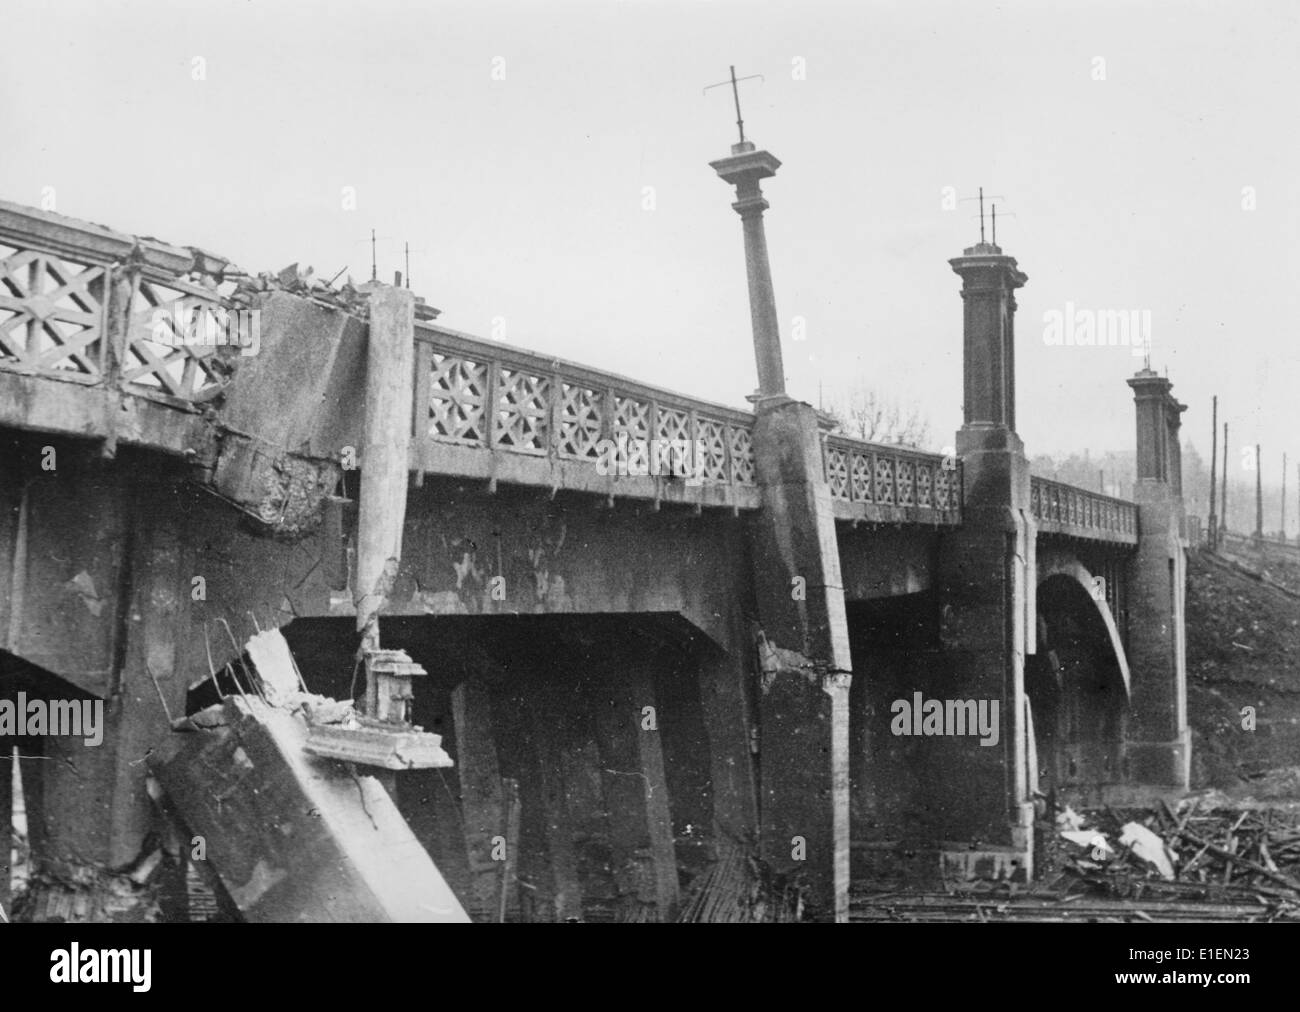 Propaganda text! from Nazi news reporting on the back of the picture: 'In Kharkov. A railway overbridge only incompletly Stock Photo